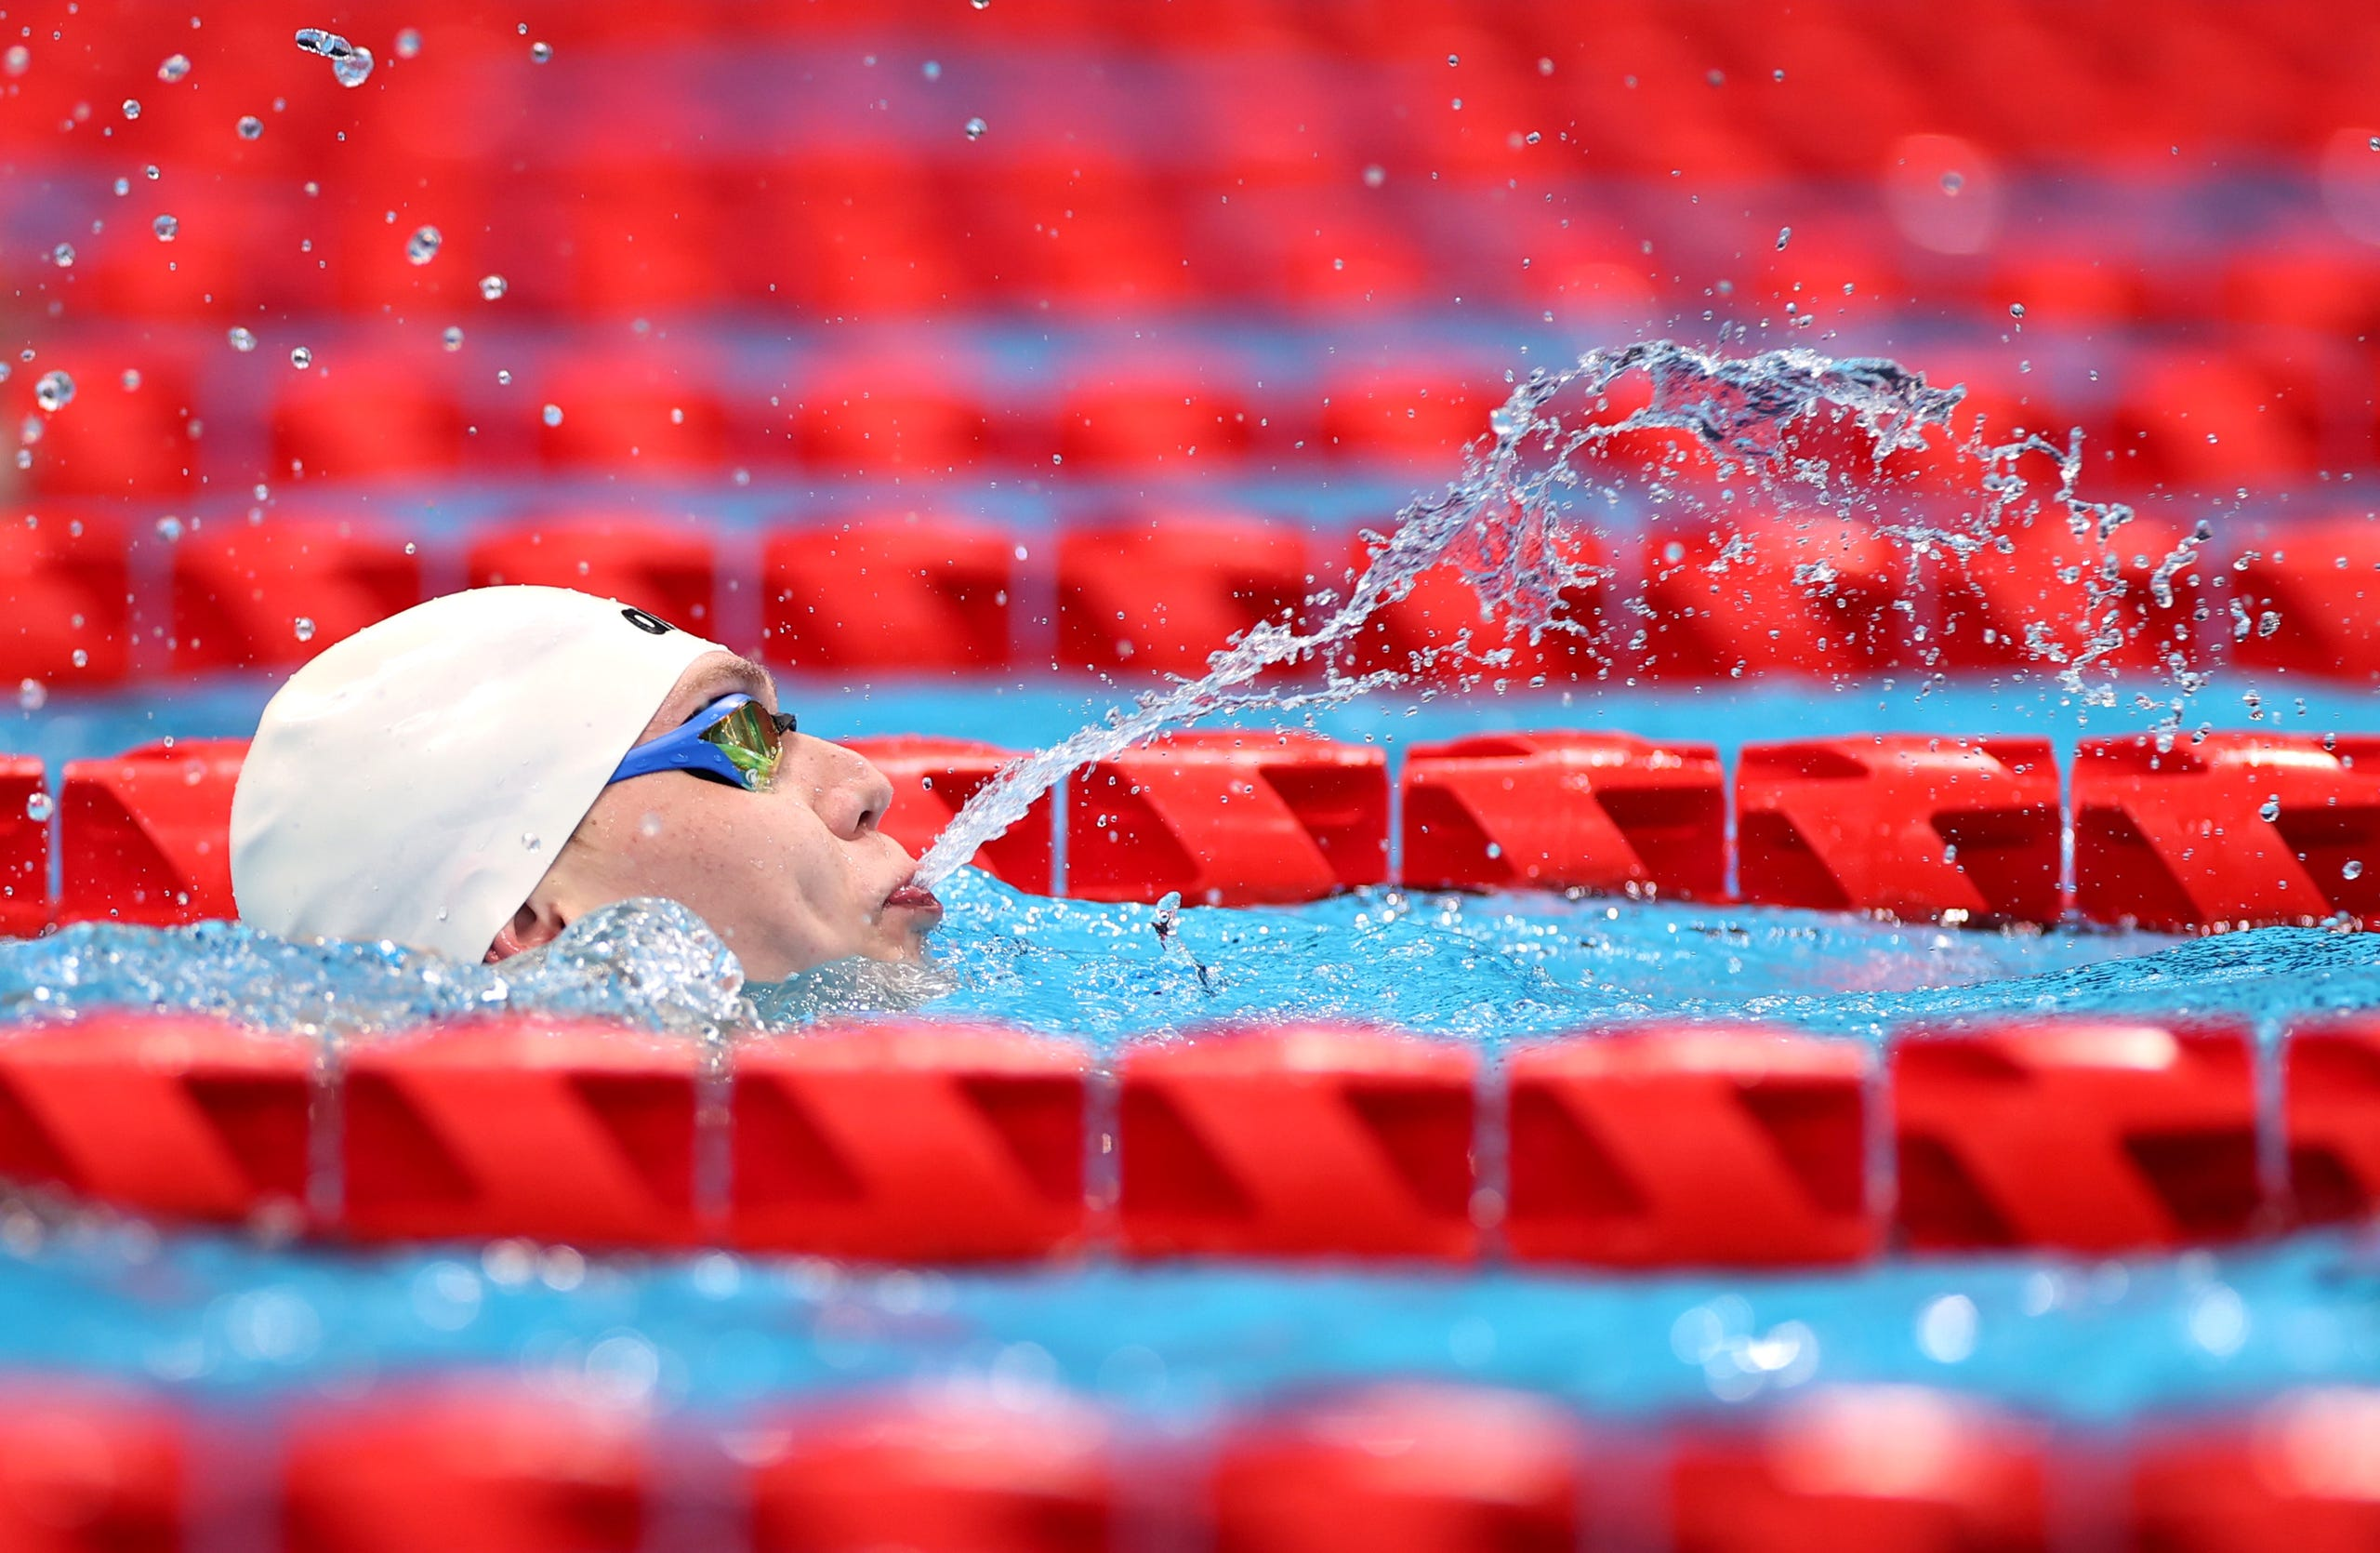 Sept. 3: Andrii Trusov of team Ukraine competes in the Men's 50m butterfly final - S7 on day 10 of the Tokyo 2020 Paralympic Games at Tokyo Aquatics Centre.